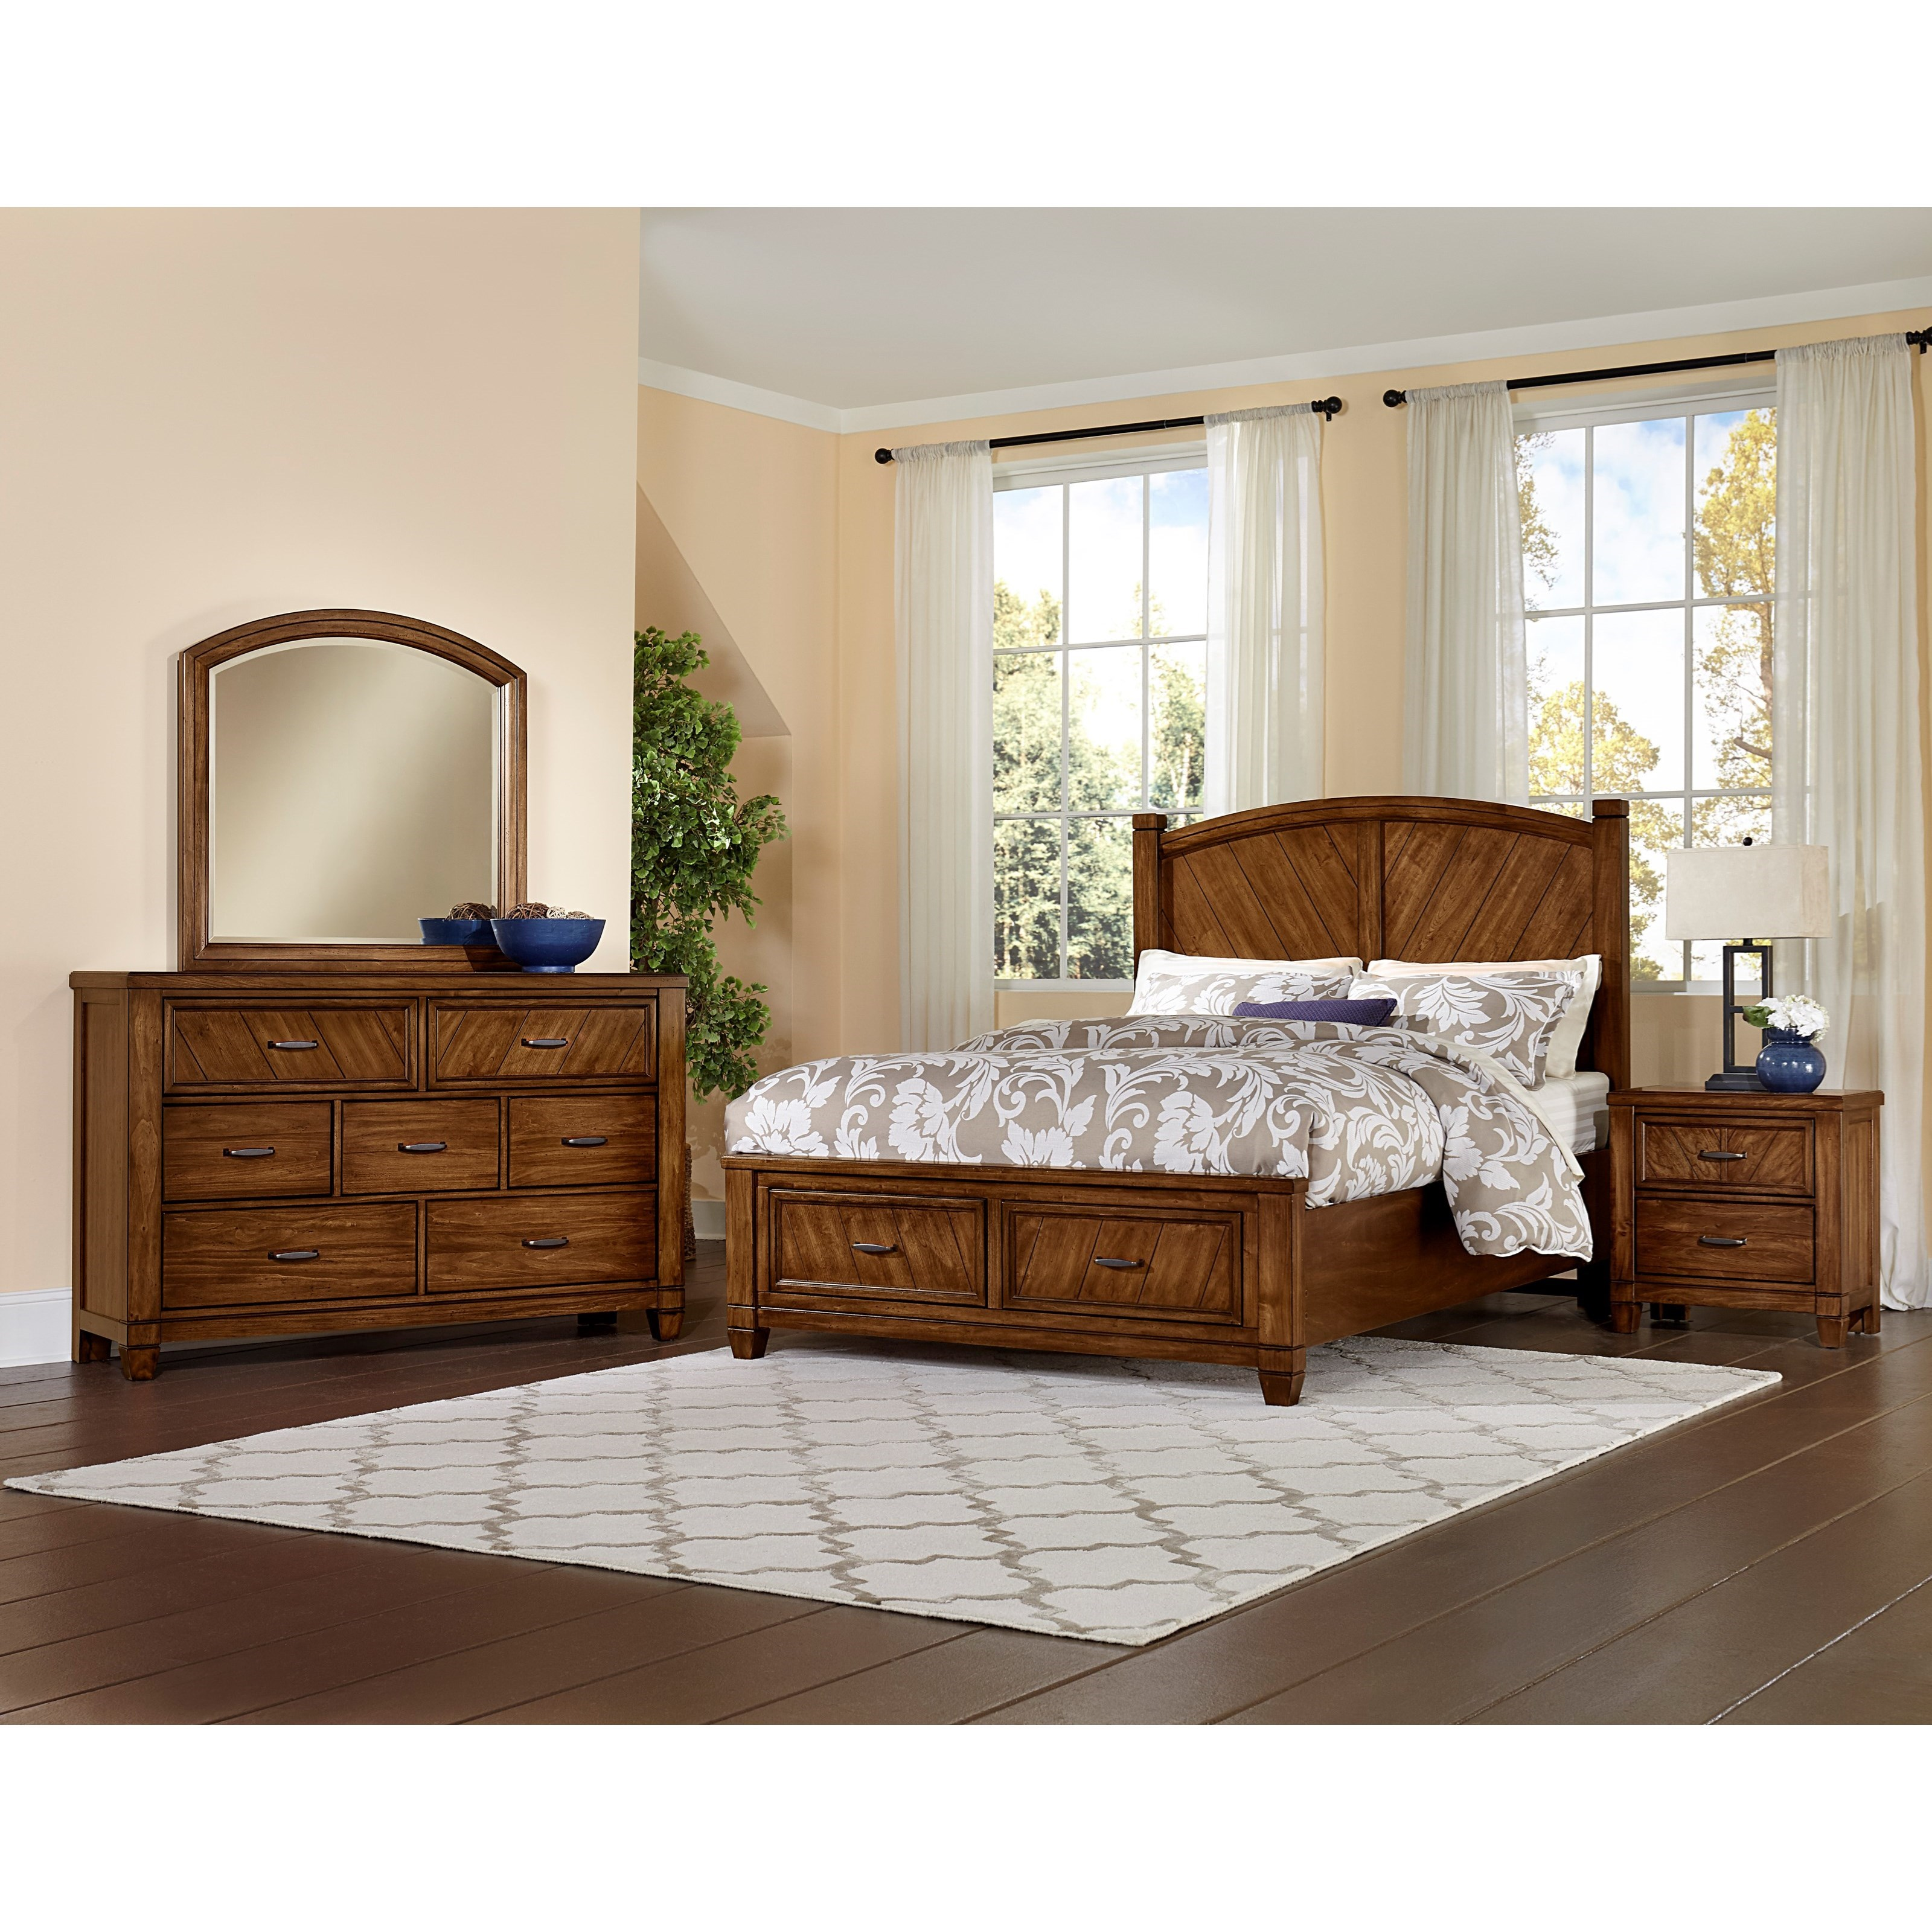 Vaughan Bassett Rustic Cottage King Bedroom Group - Item Number: 642 K Bedroom Group 2